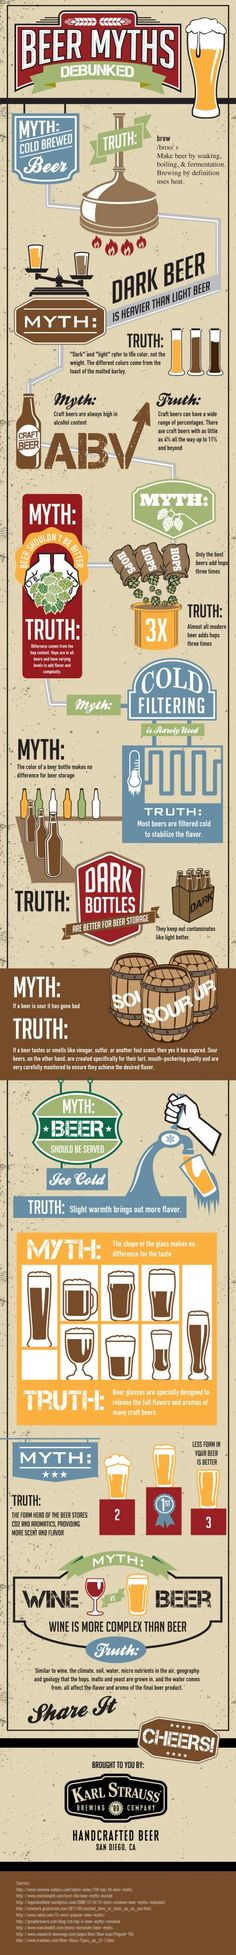 Beer Myths Debunked! Check out our awesome craft beer selection at riversidewines.com